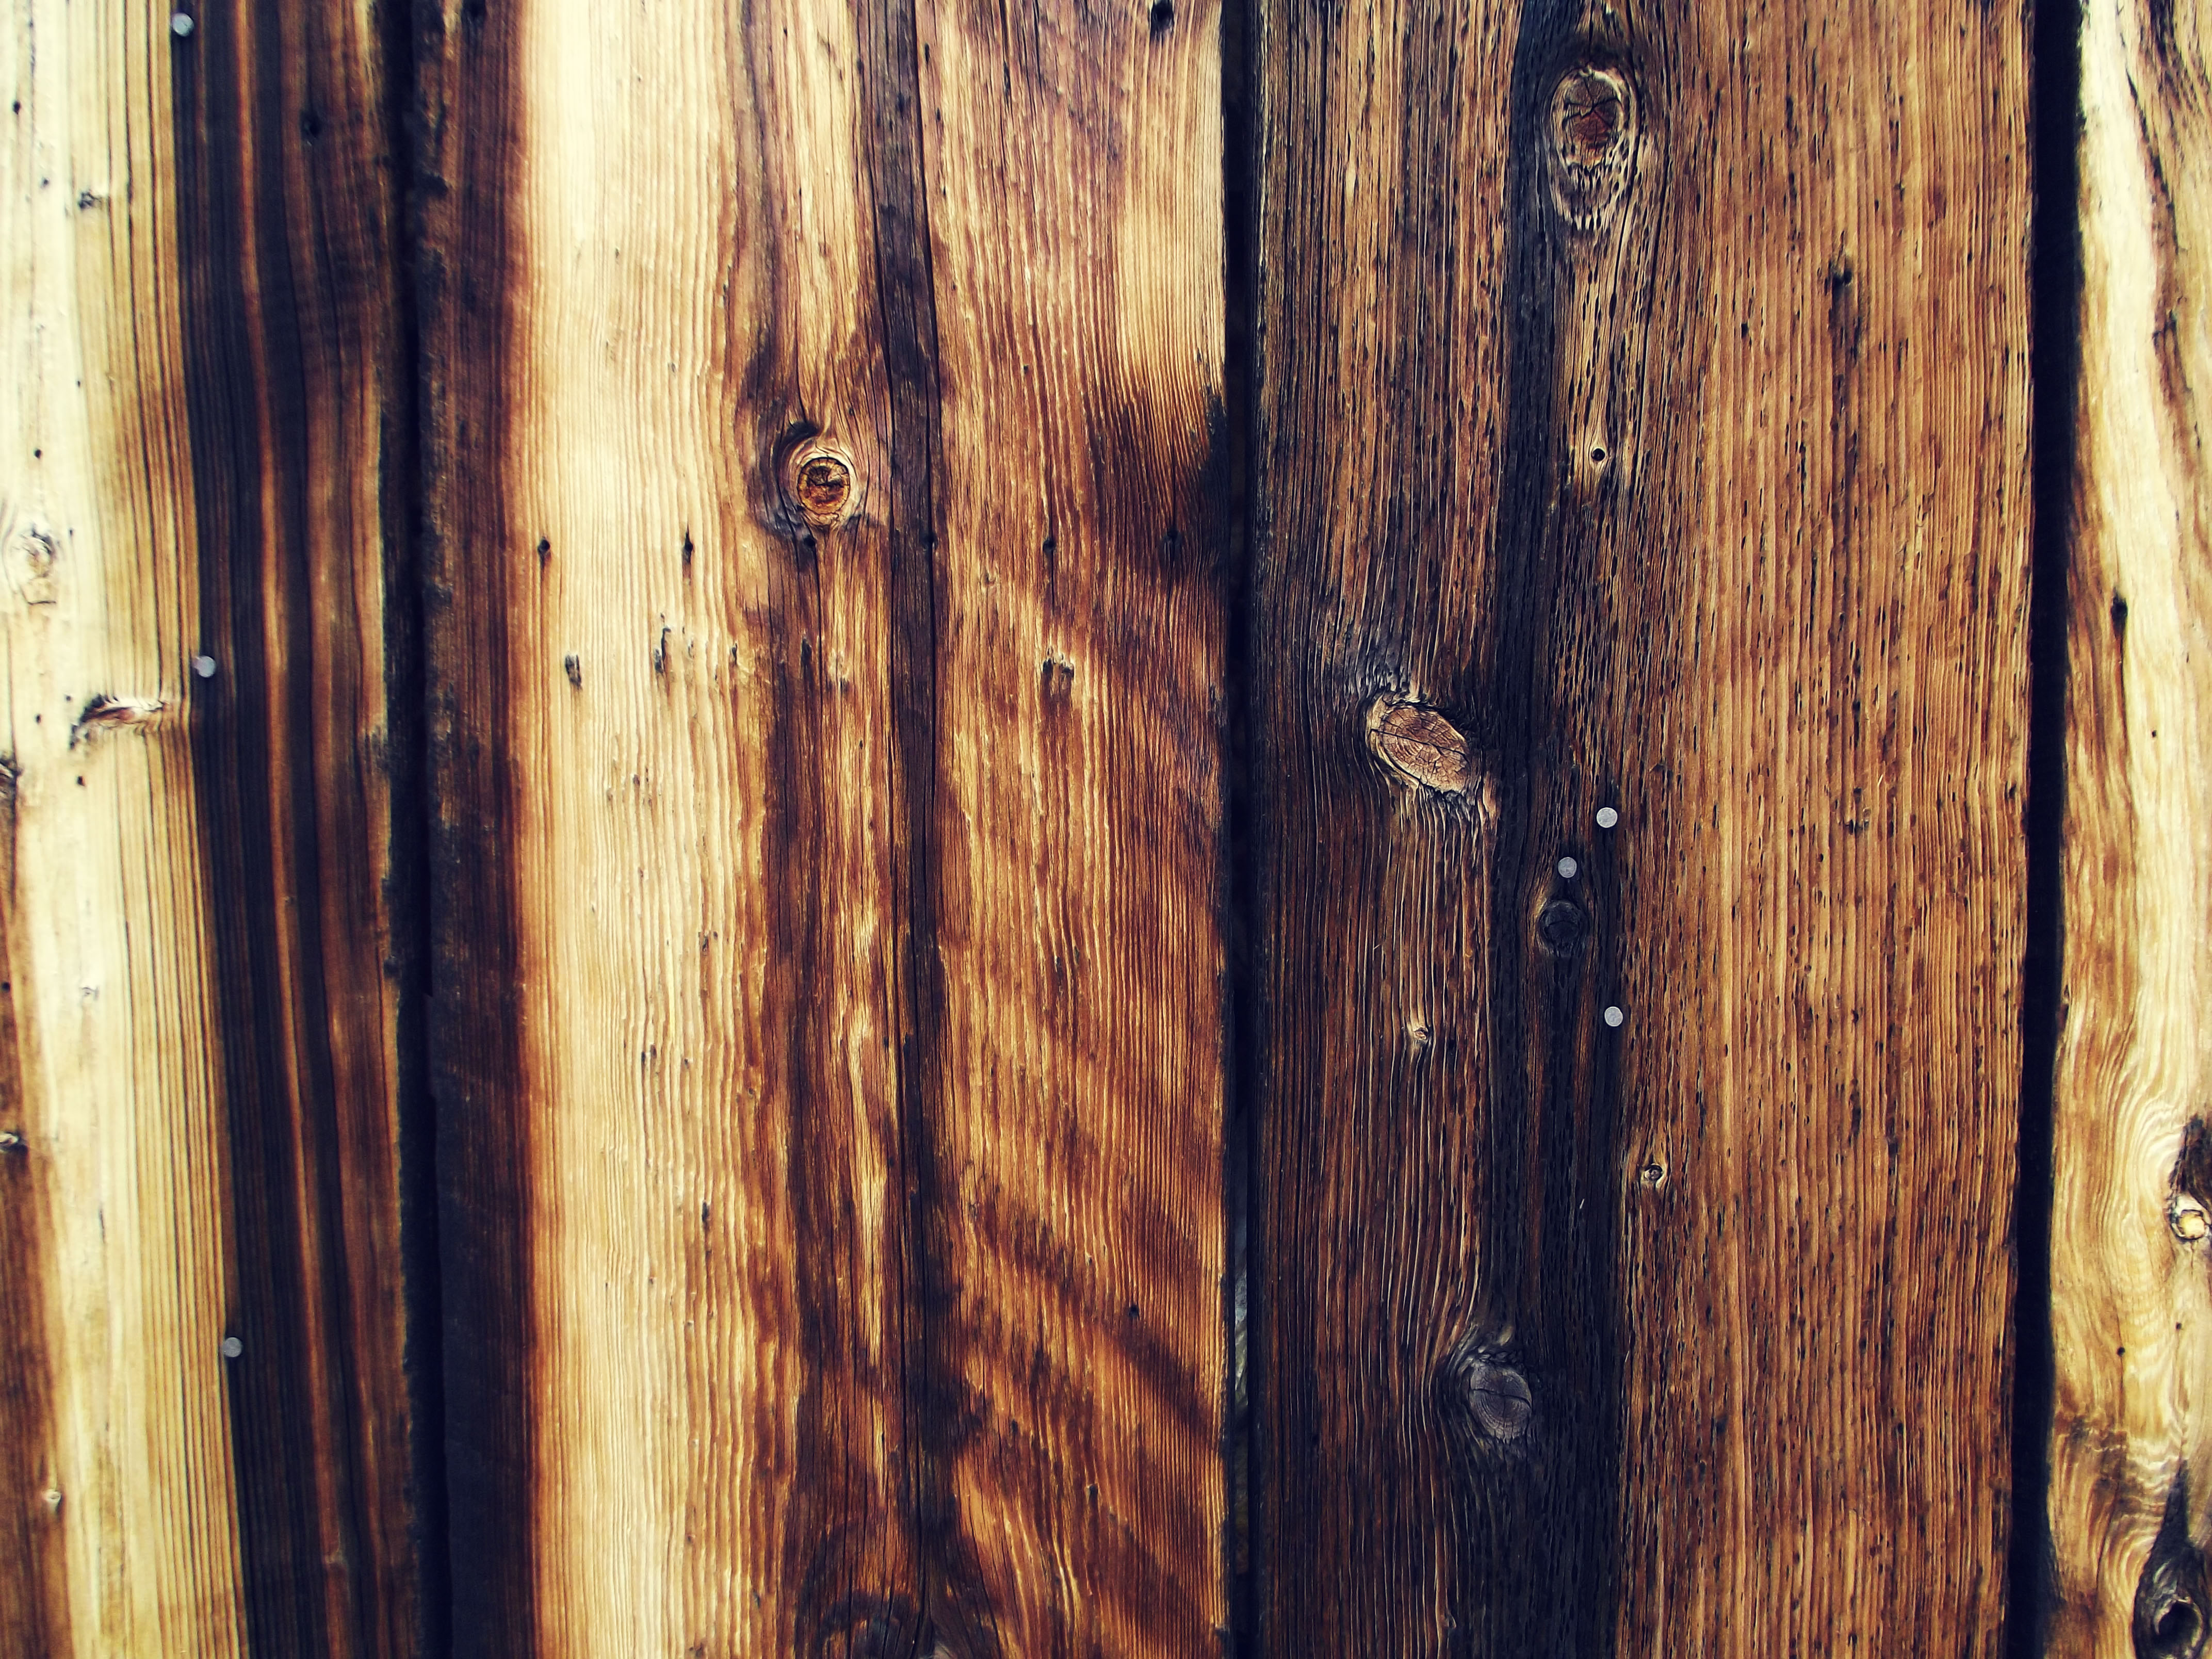 barn wood 1 by ptdesigns on deviantart barn wood 1 by ptdesigns 4288x3216